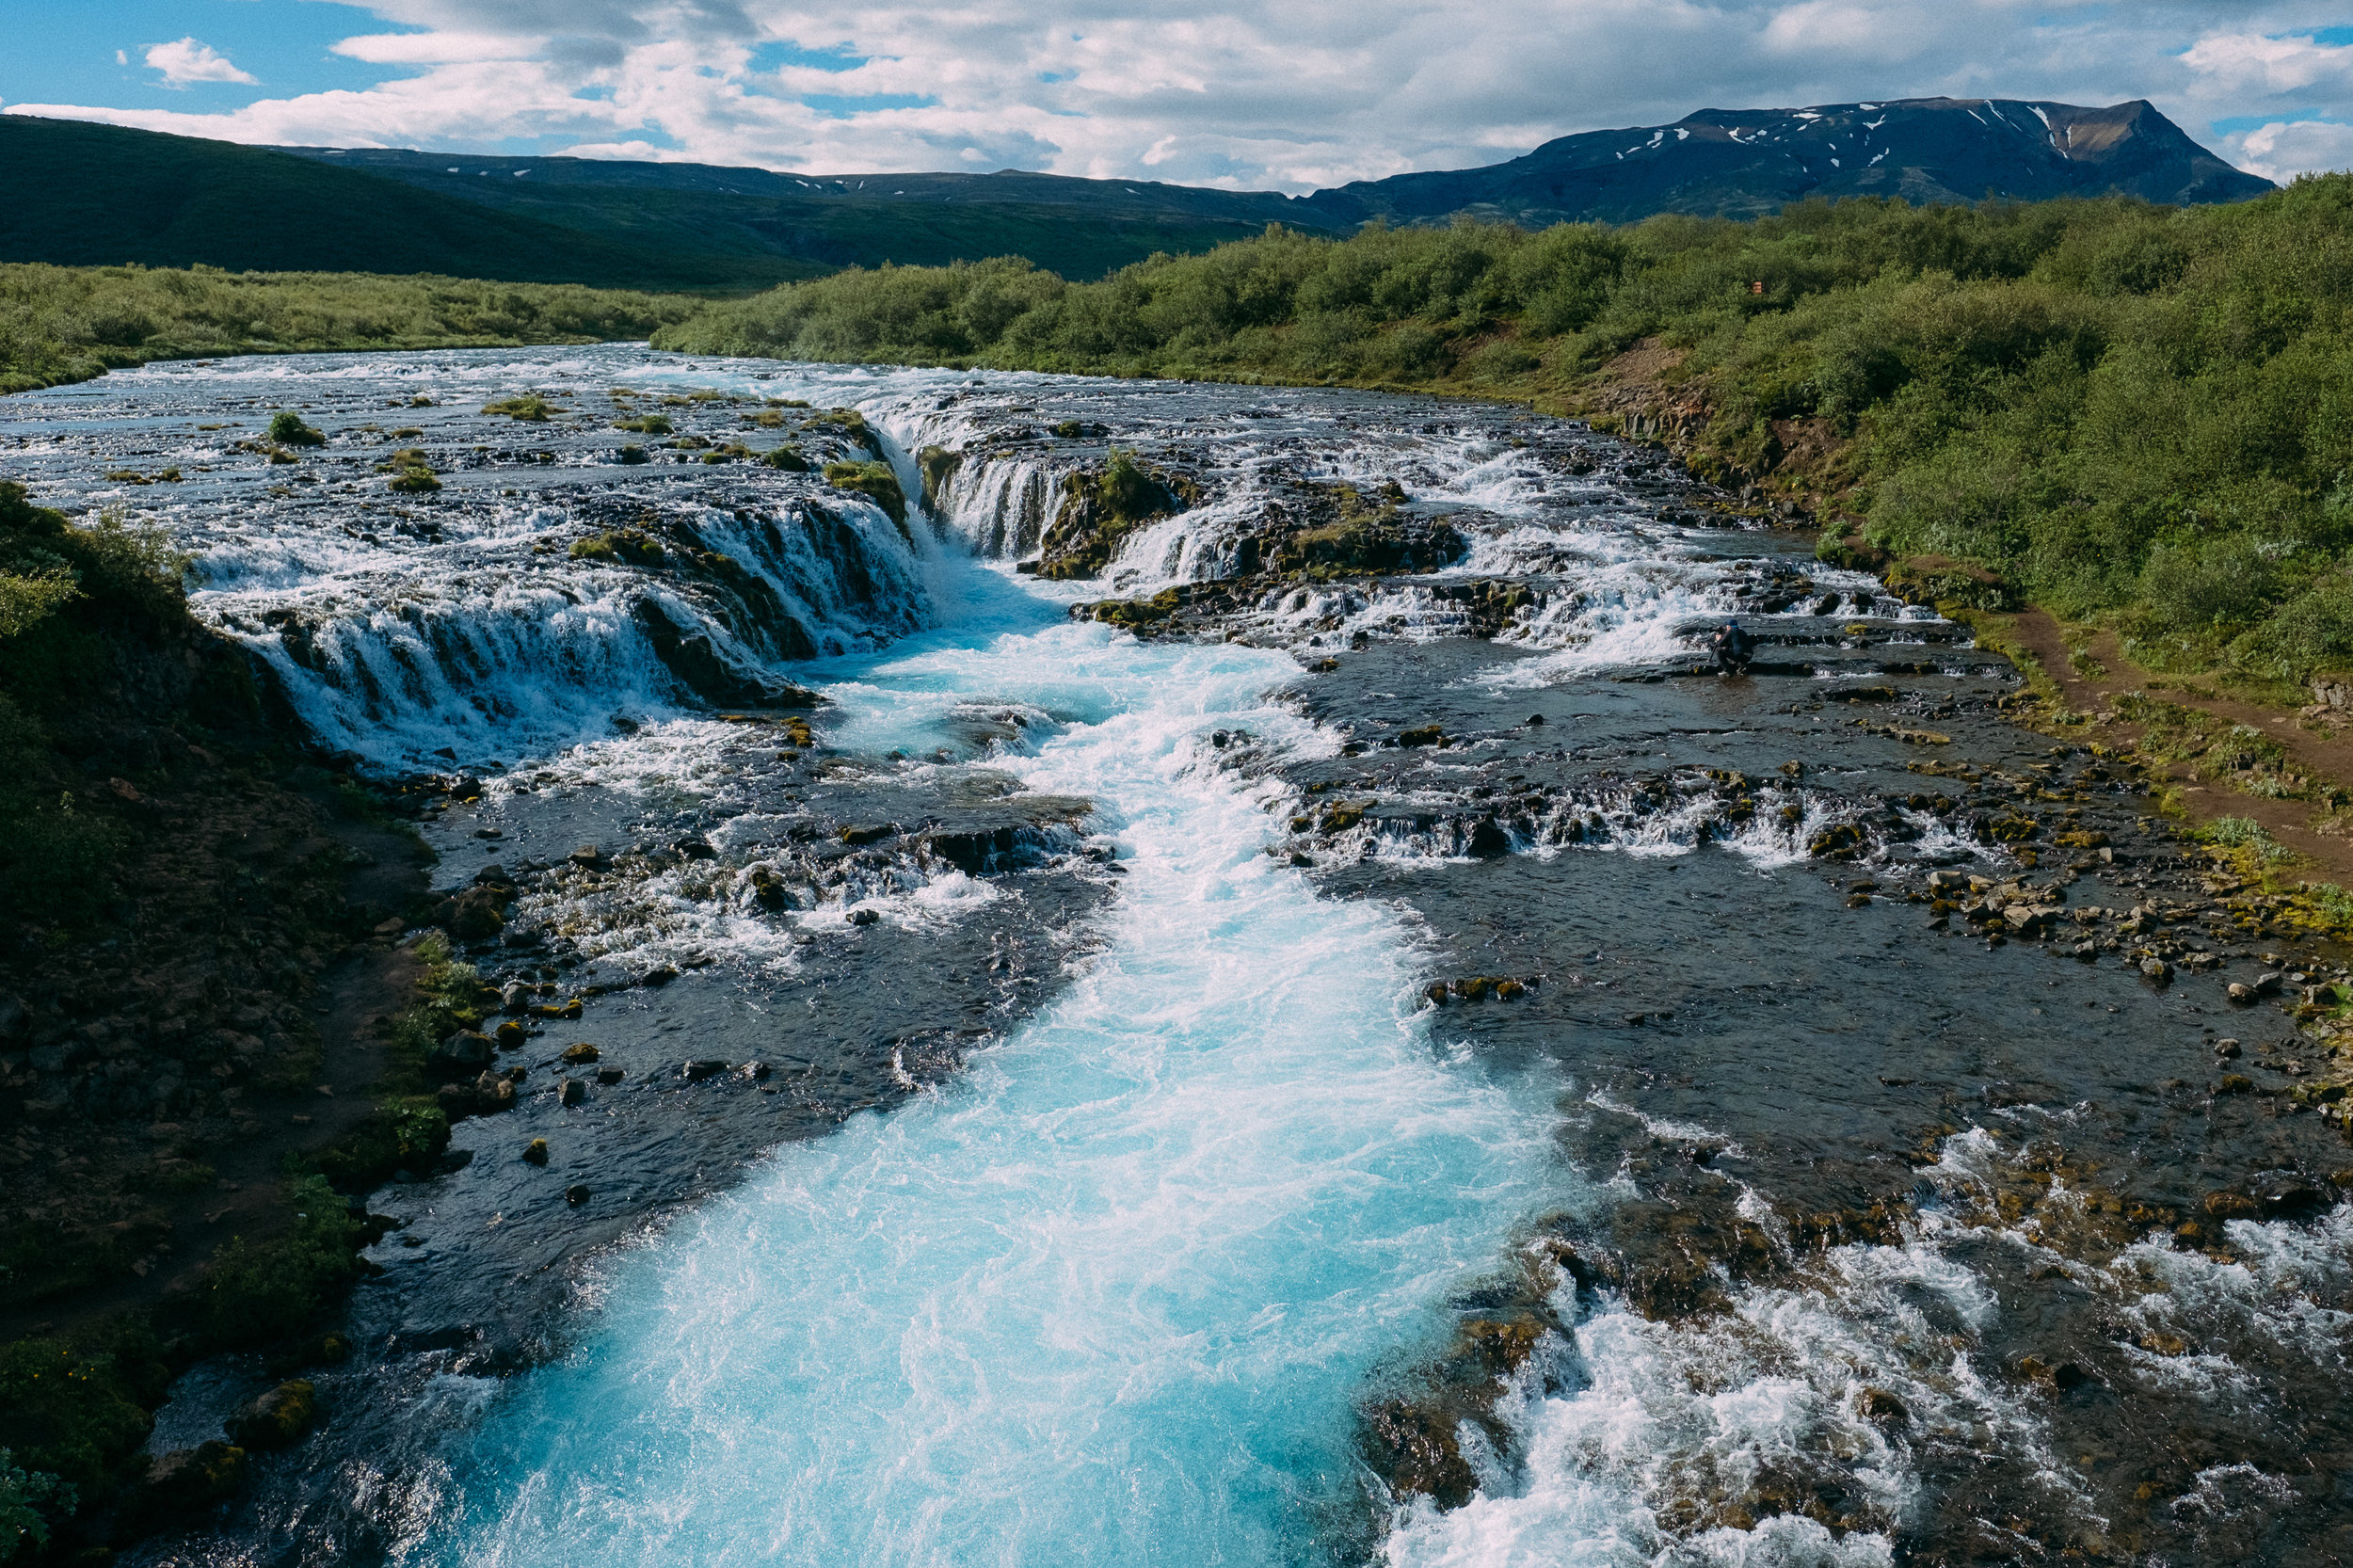 Bruarfoss Waterfall -  [64.25061,-20.5344794]  Fuji X-H1 + 16mm 1.4 lens